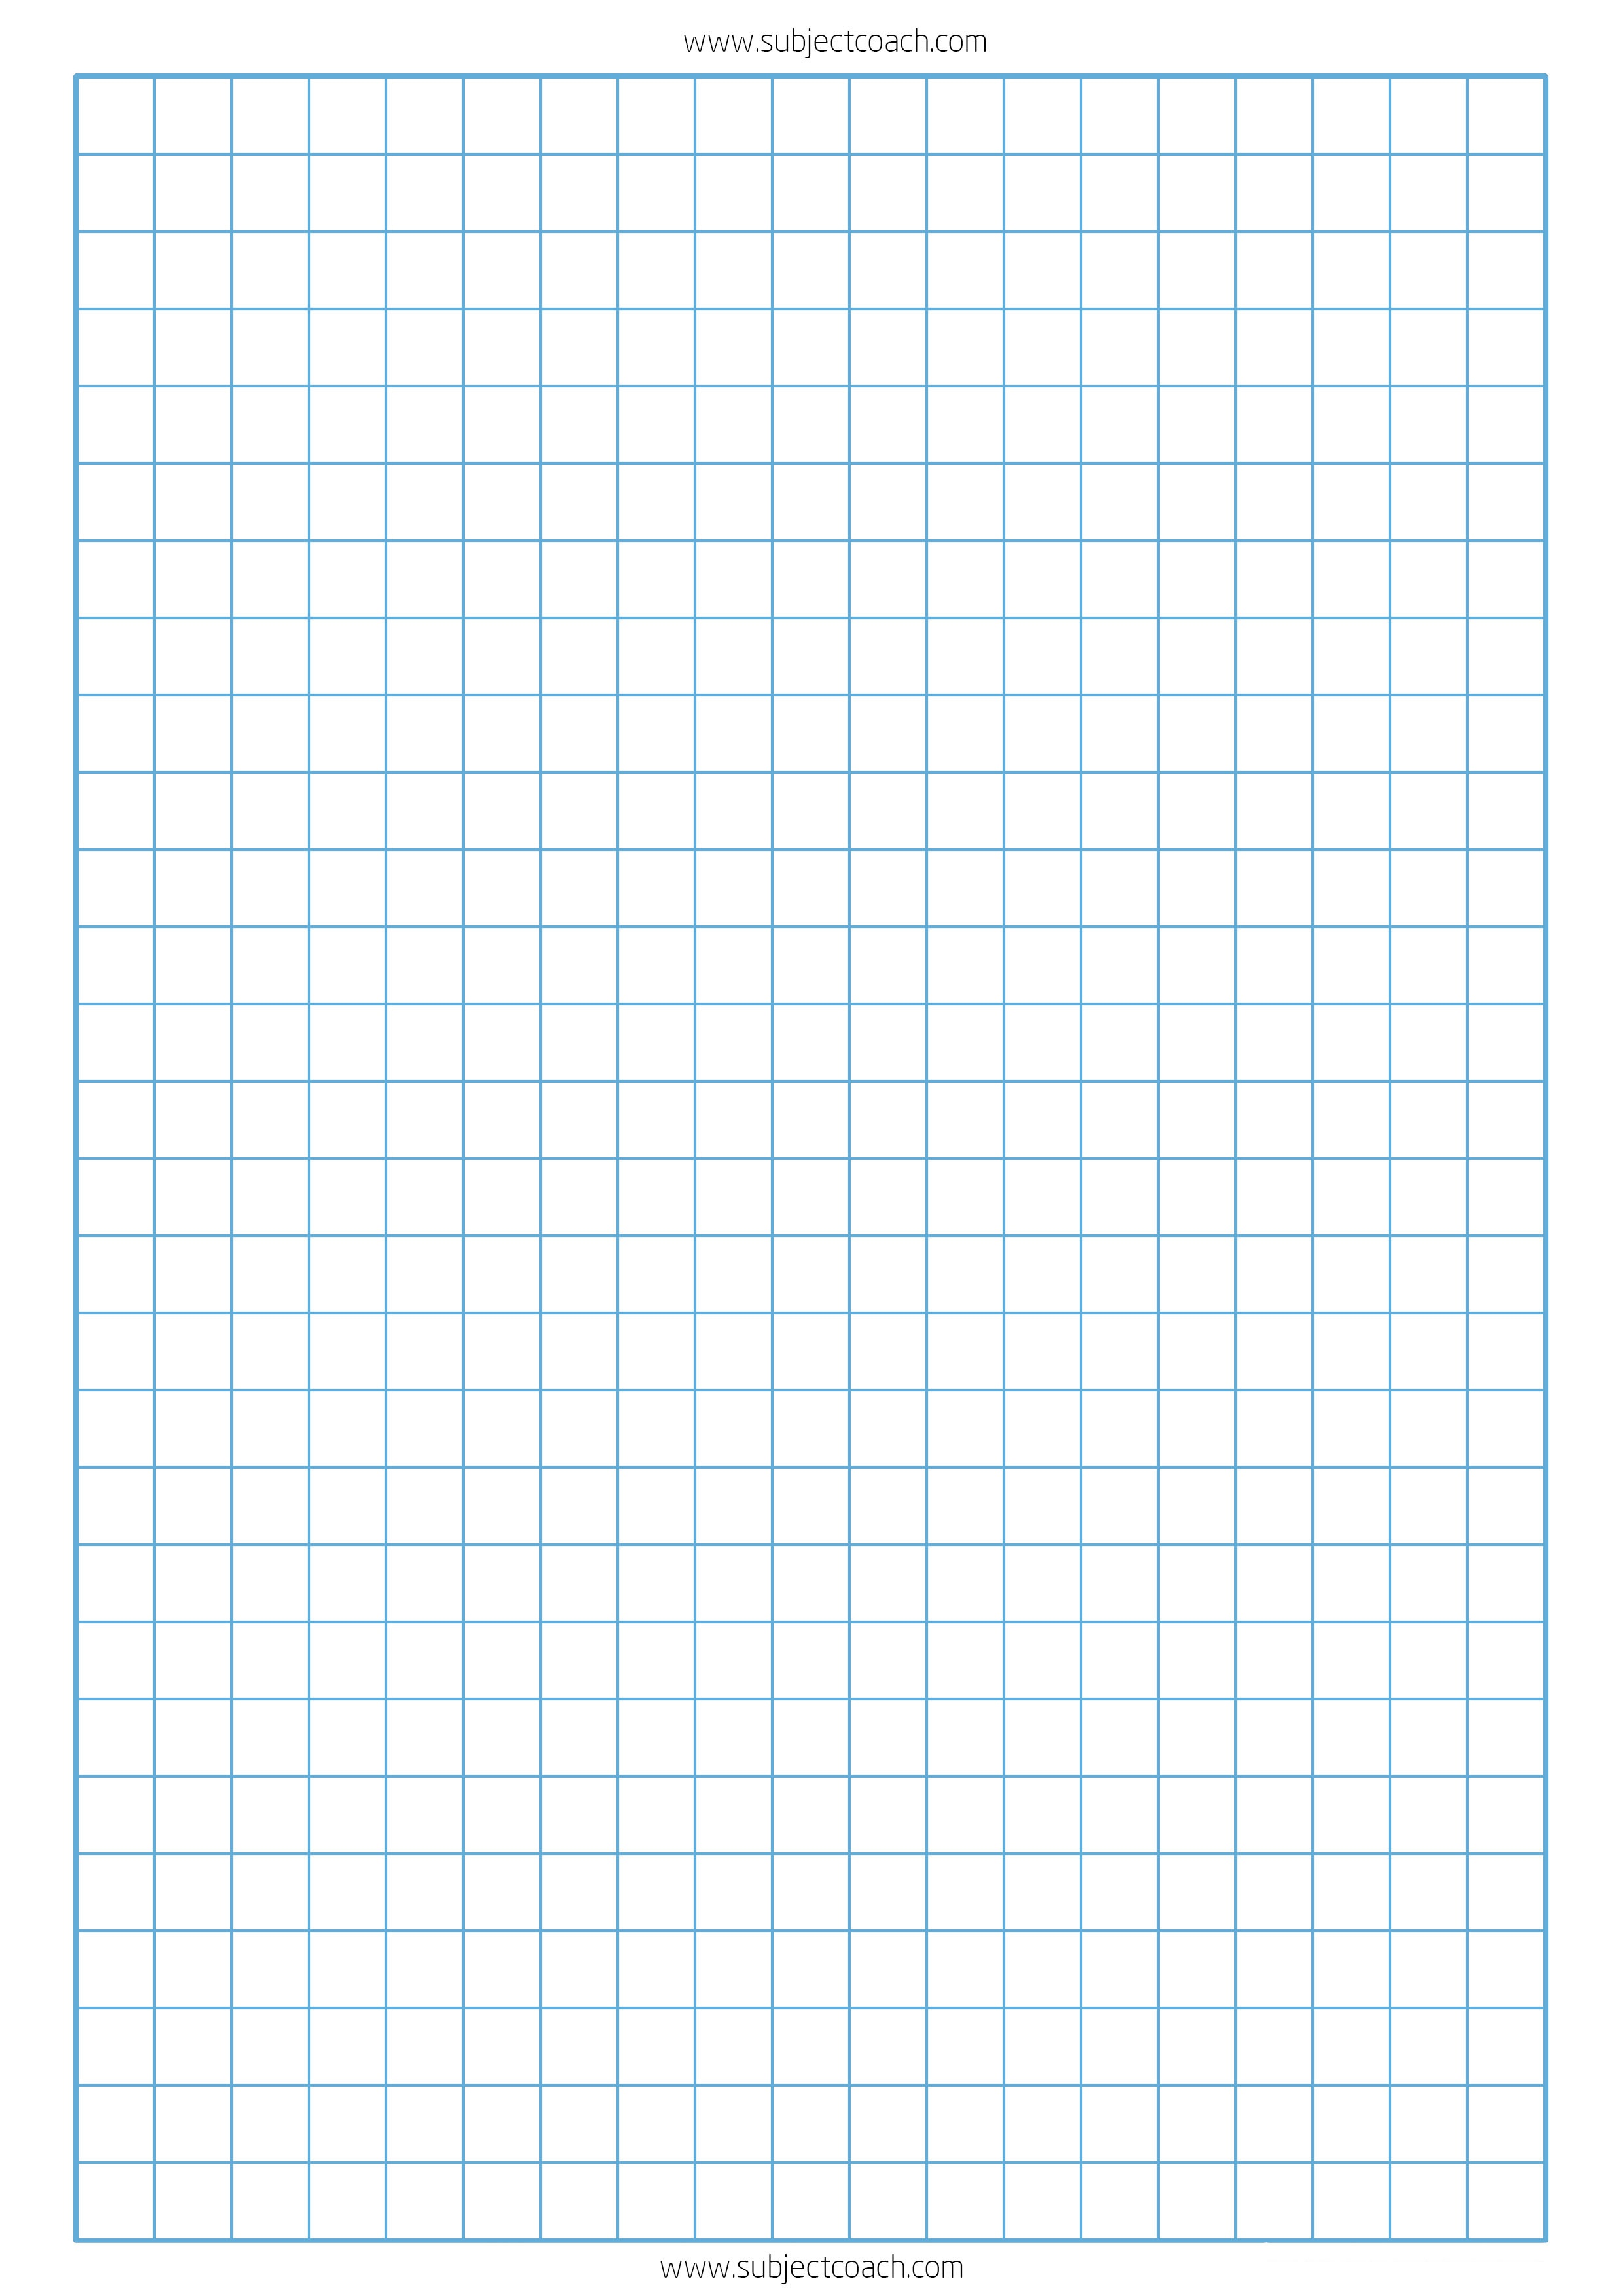 Free Printable Graph Paper 1Cm For A4 Paper   Subjectcoach - Free Printable Grid Paper